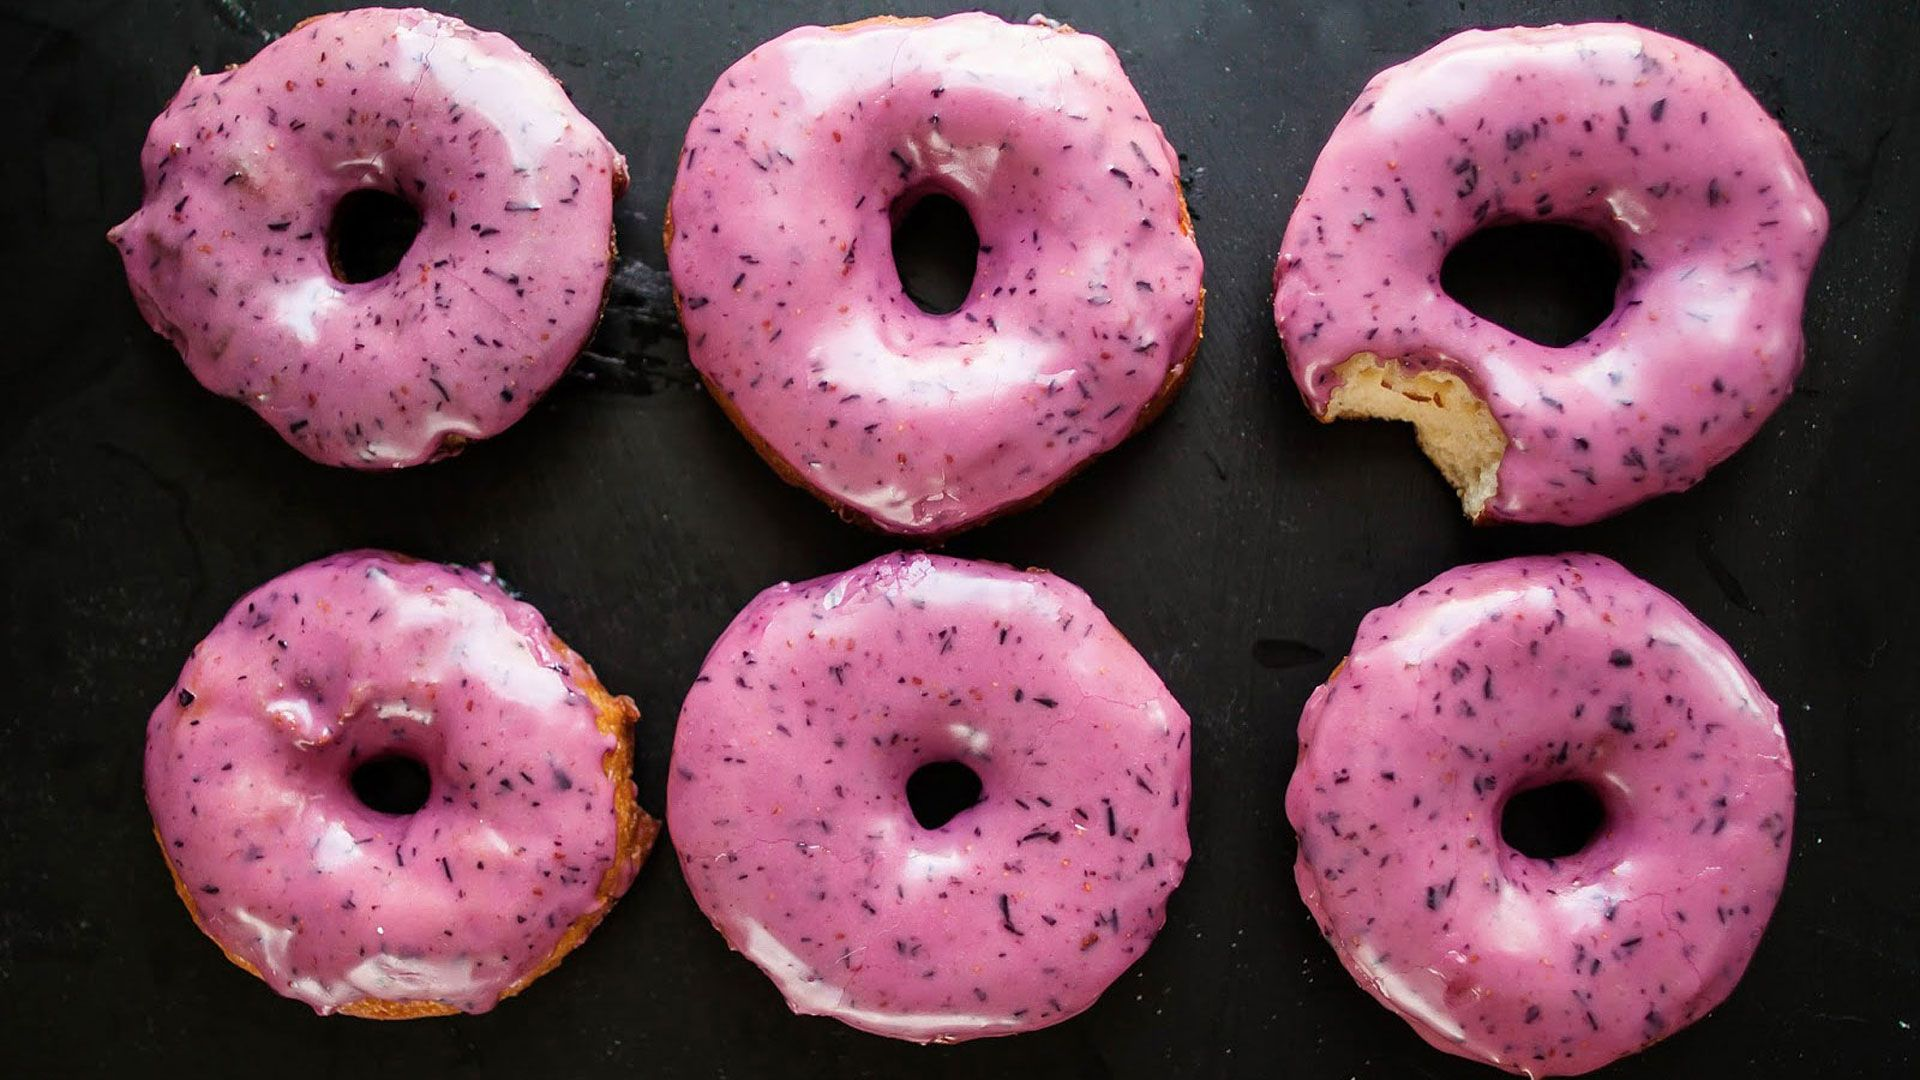 six donuts with pink icing and bite taken out of one